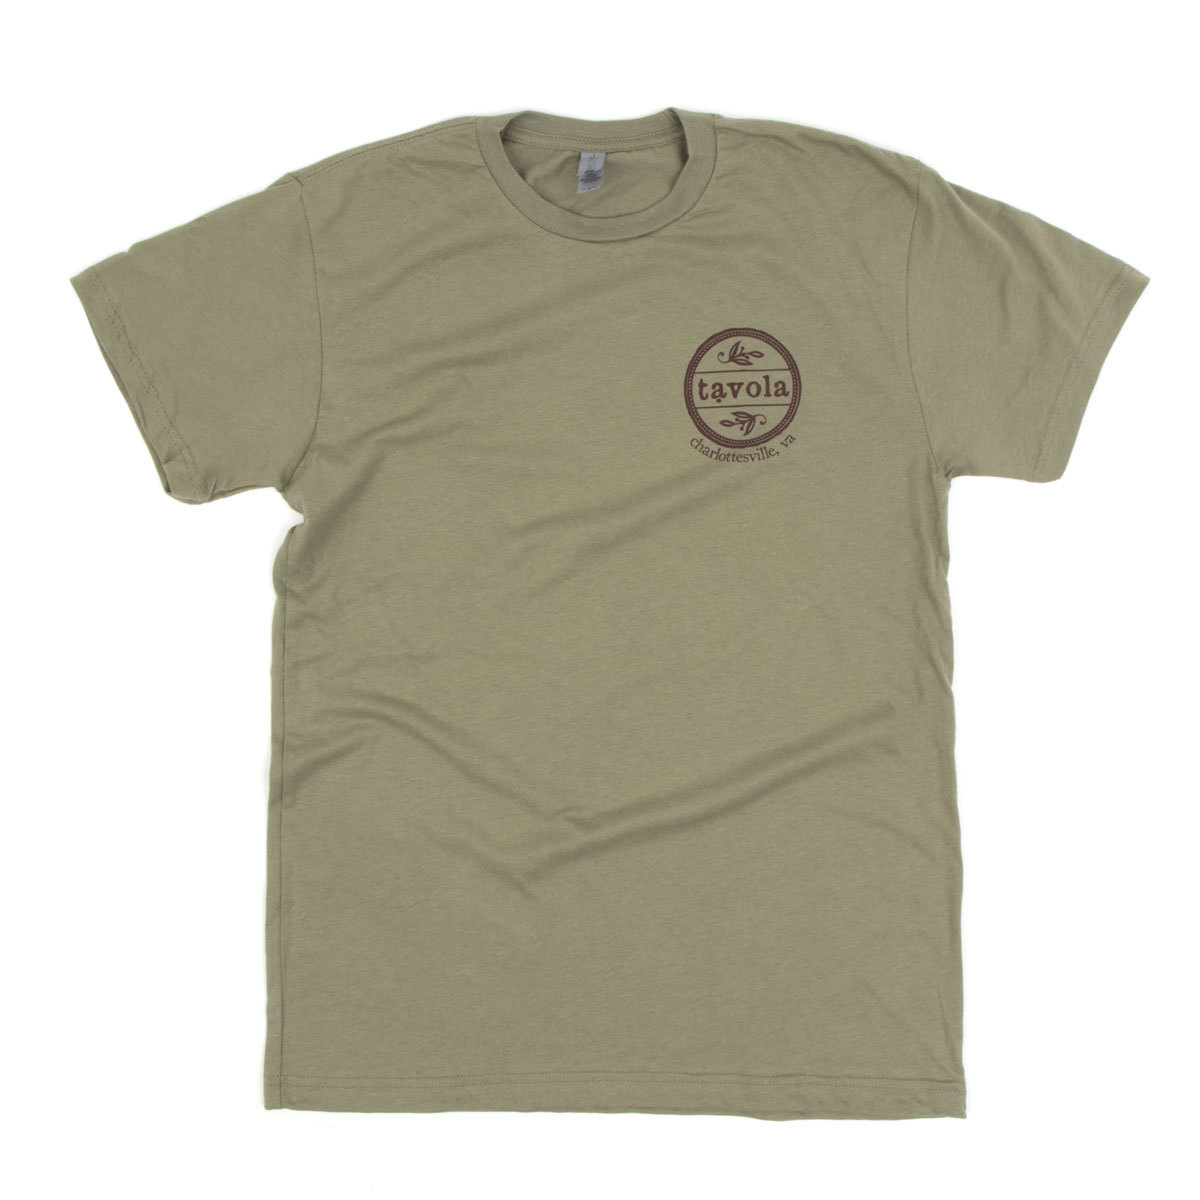 tavola Next Level Short Sleeve T-shirt